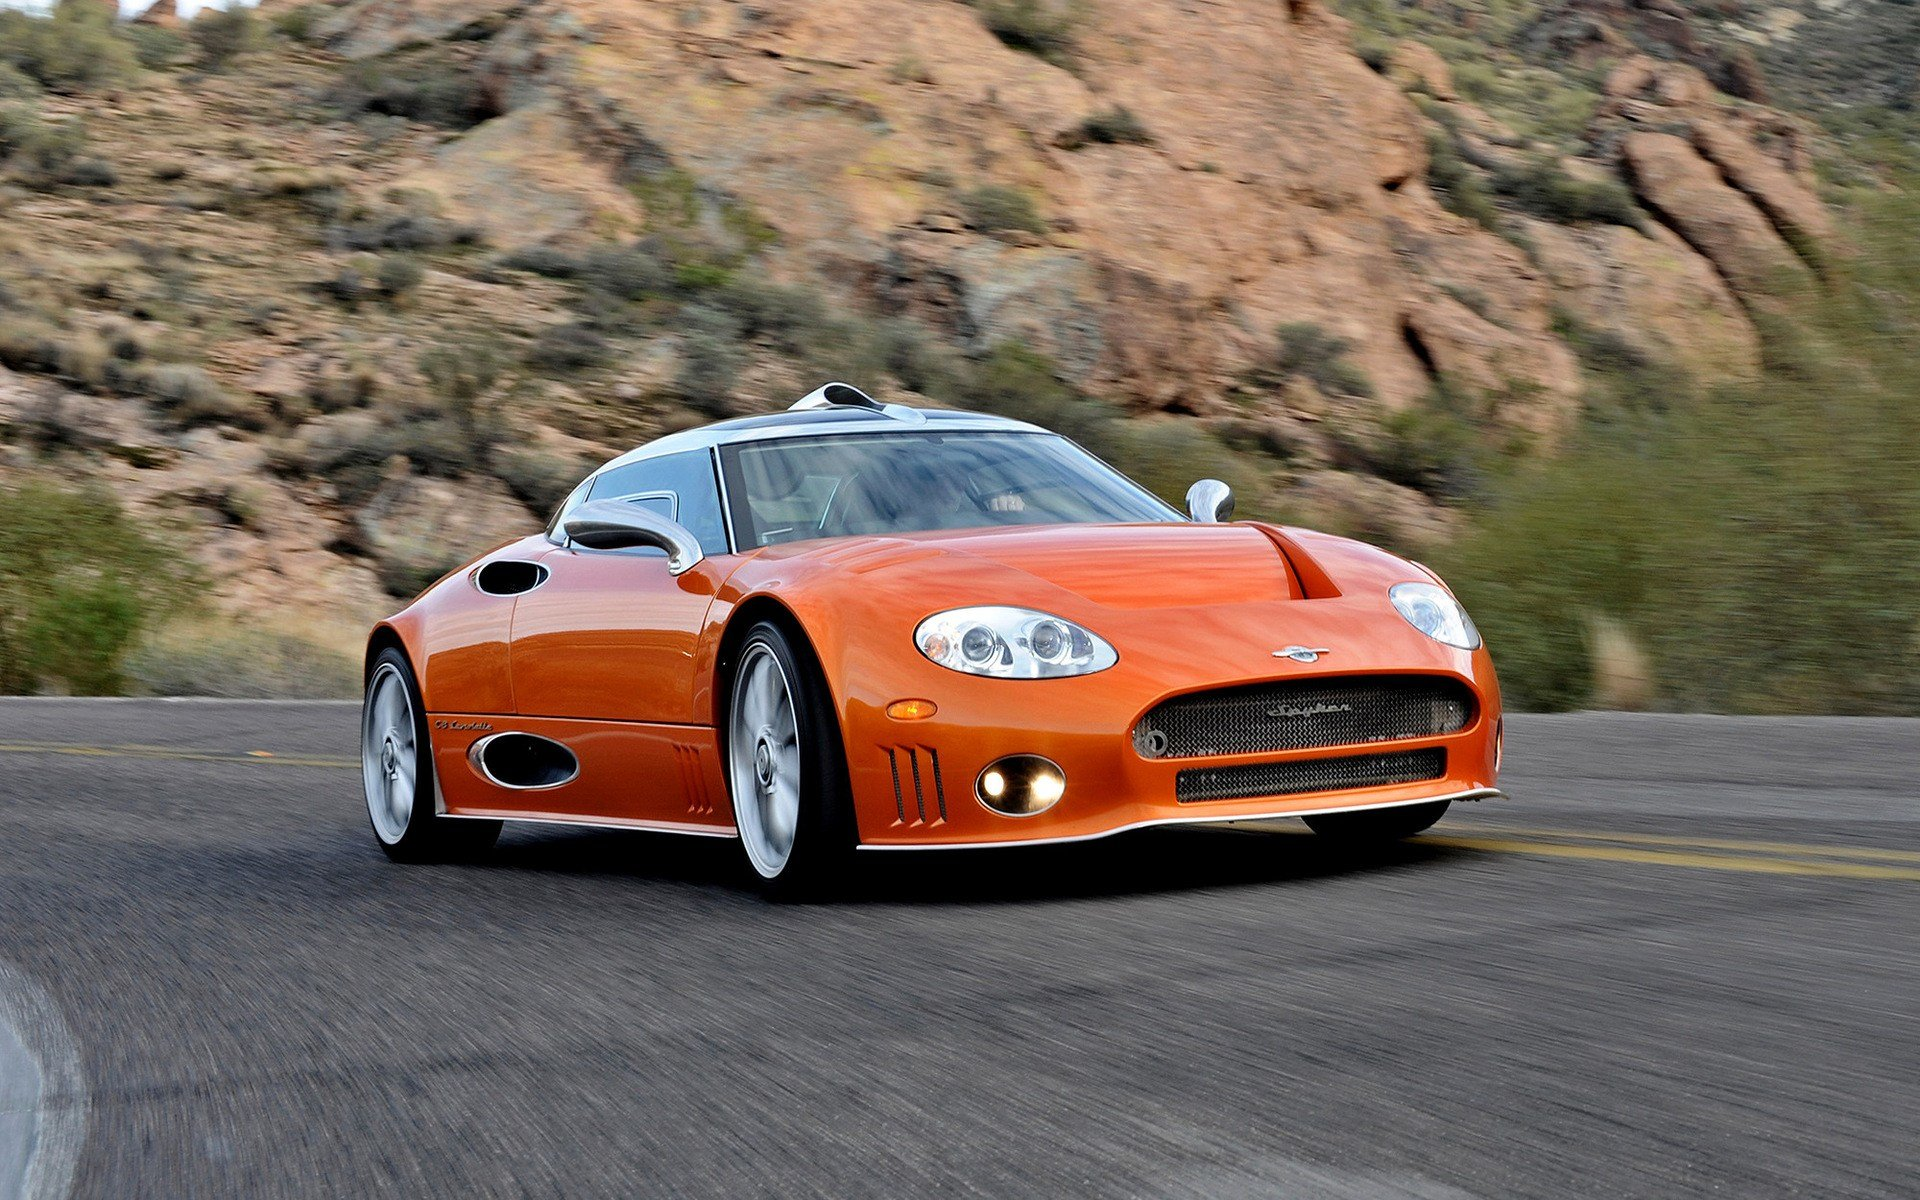 Latest 2013 Spyker C8 Laviolette Wallpapers And Hd Images Car Free Download